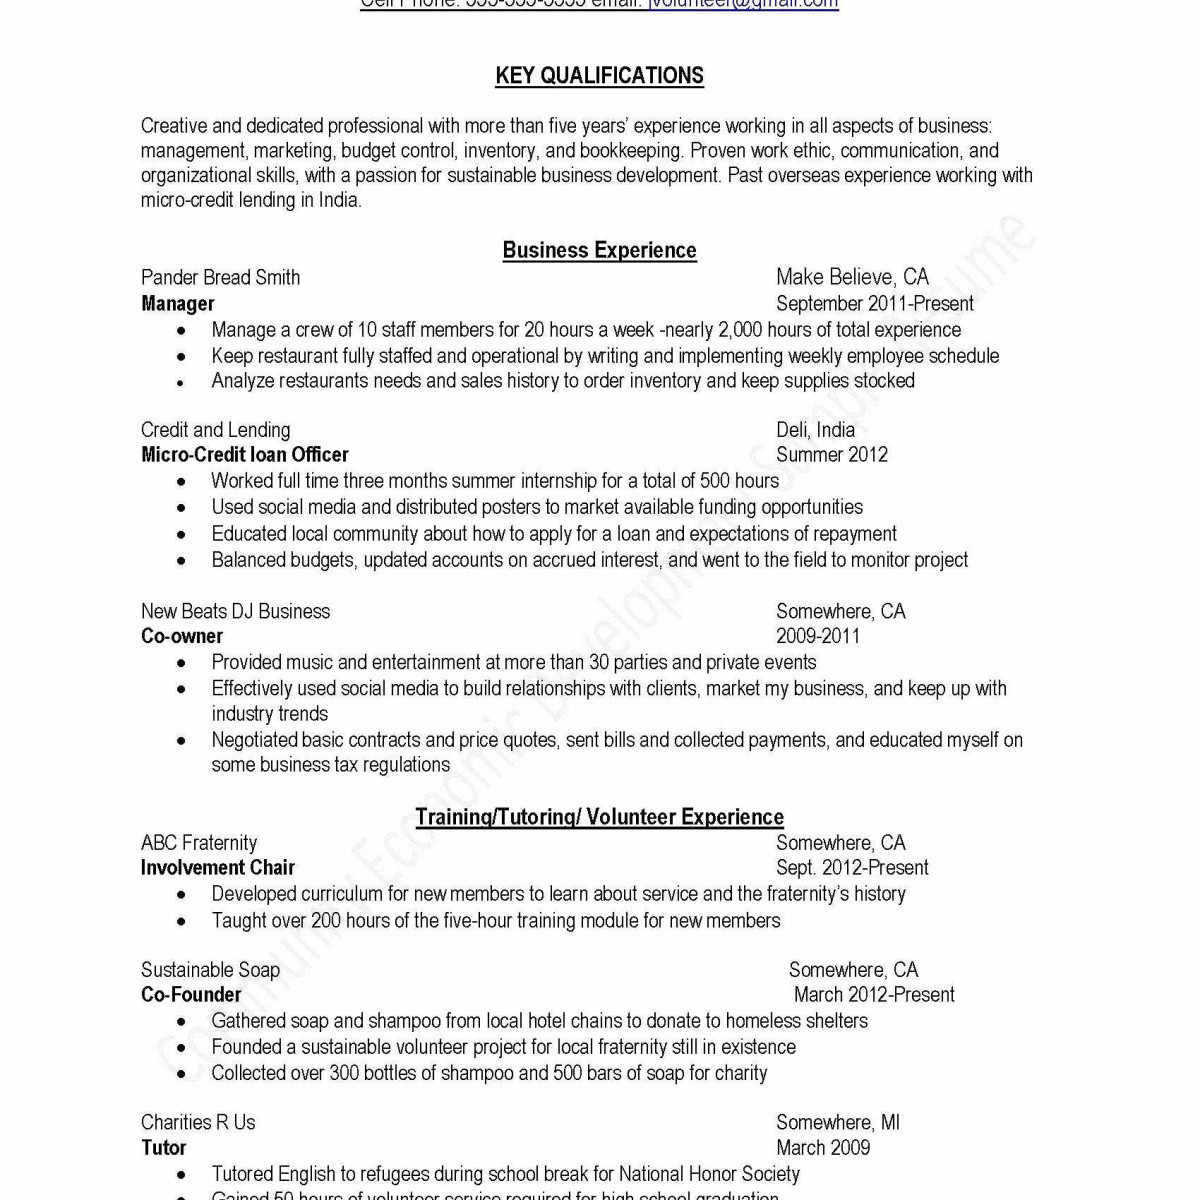 first year teacher resume example-First Year Teacher Resume Fresh First Time Teacher Resume Fresh Painter Resume 0d Aurelianmg 1-t